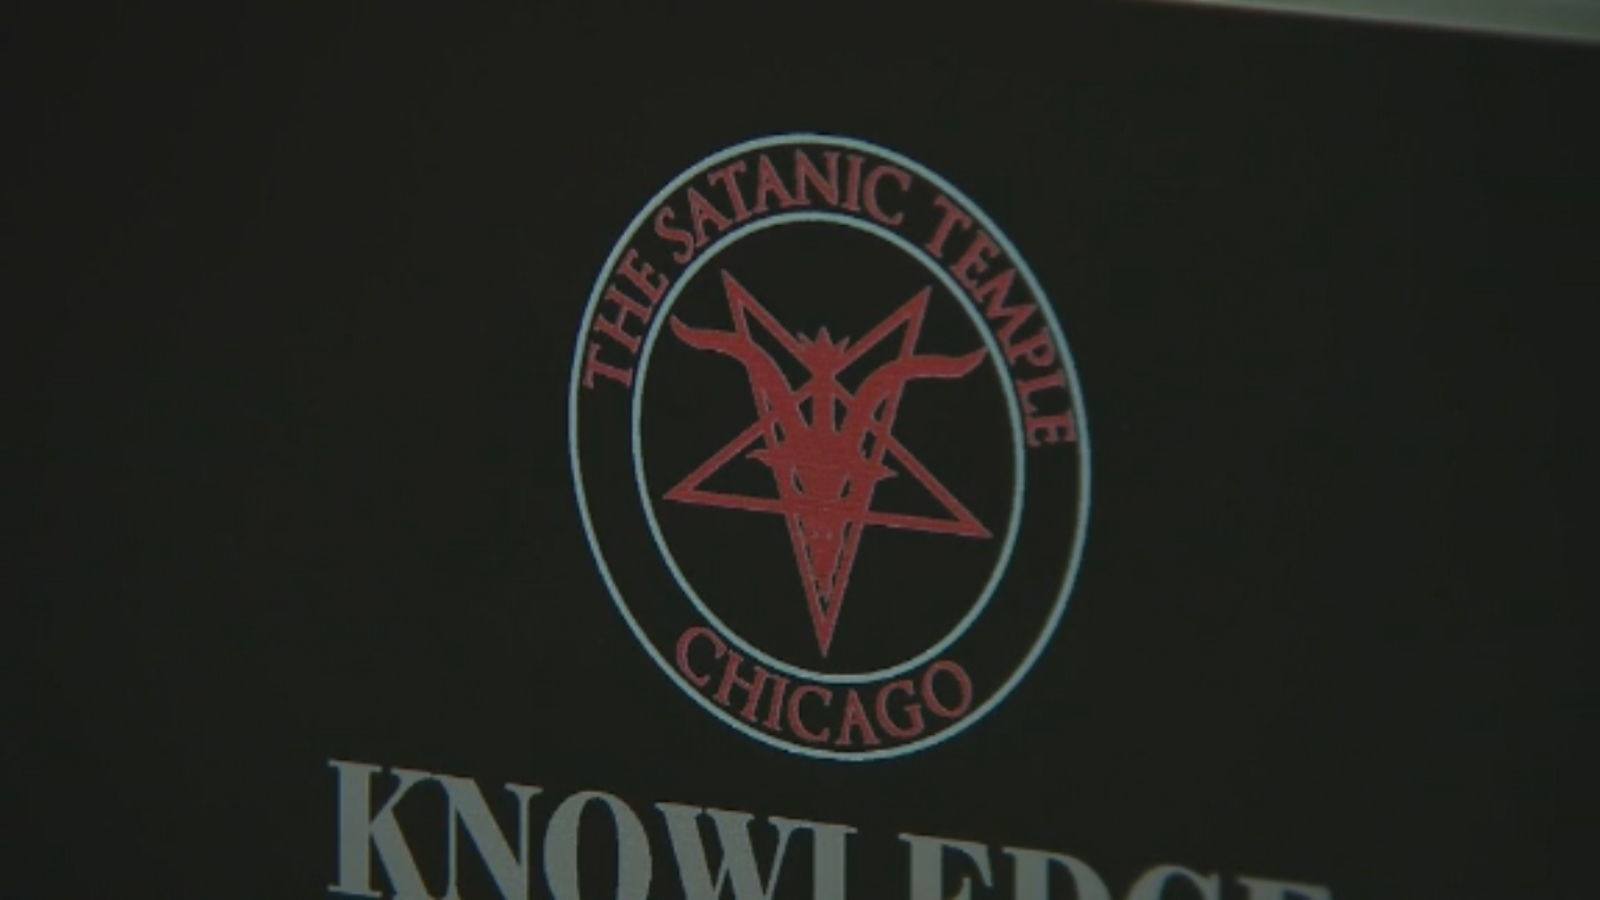 Chicago's chapter of The Satanic Temple put up its display at the state capitol.